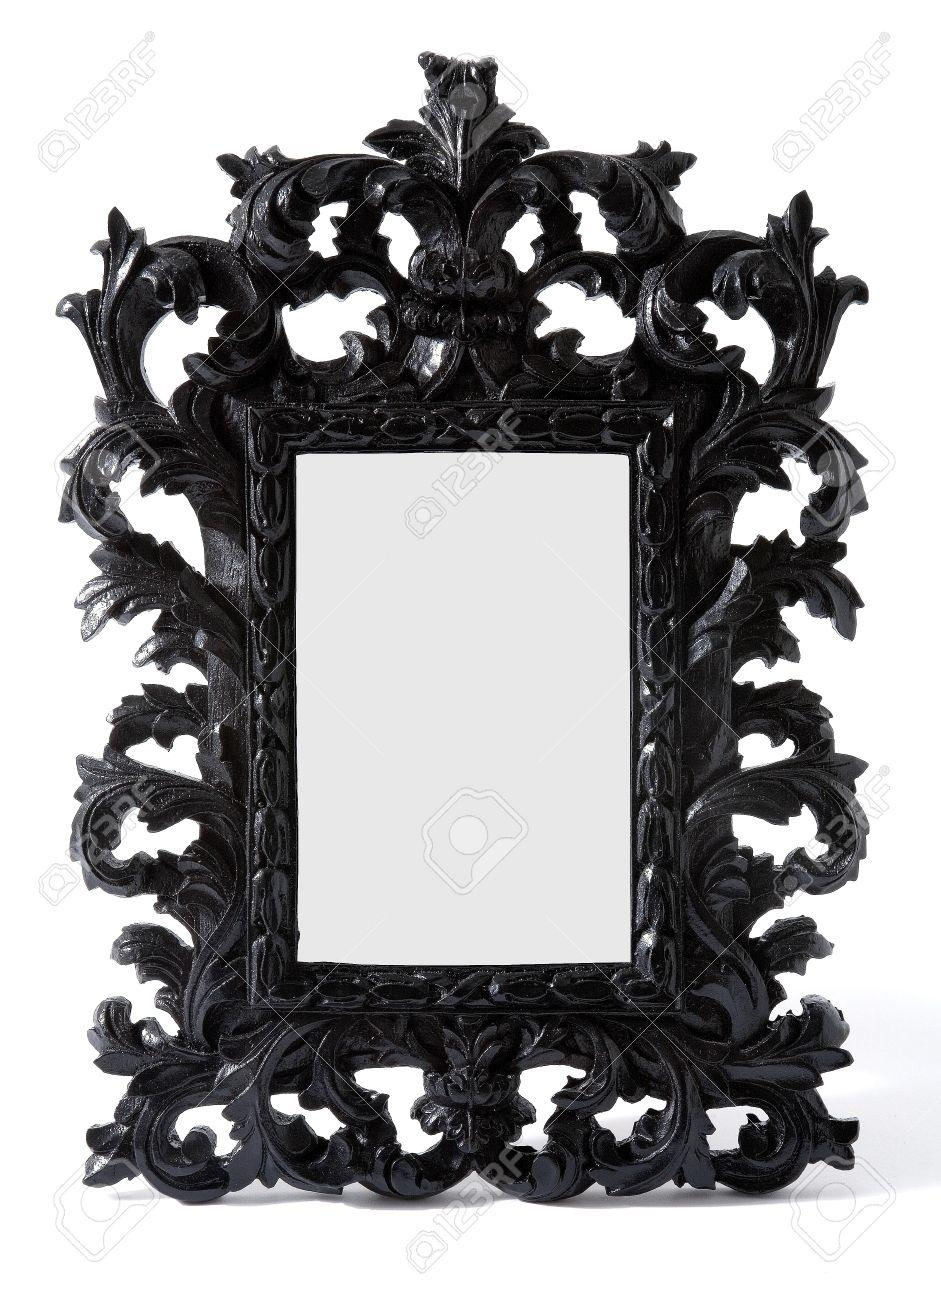 Baroque Black Painted Carved Wood Mirror Frame Isolated On White Regarding Baroque Black Mirror (Image 3 of 20)